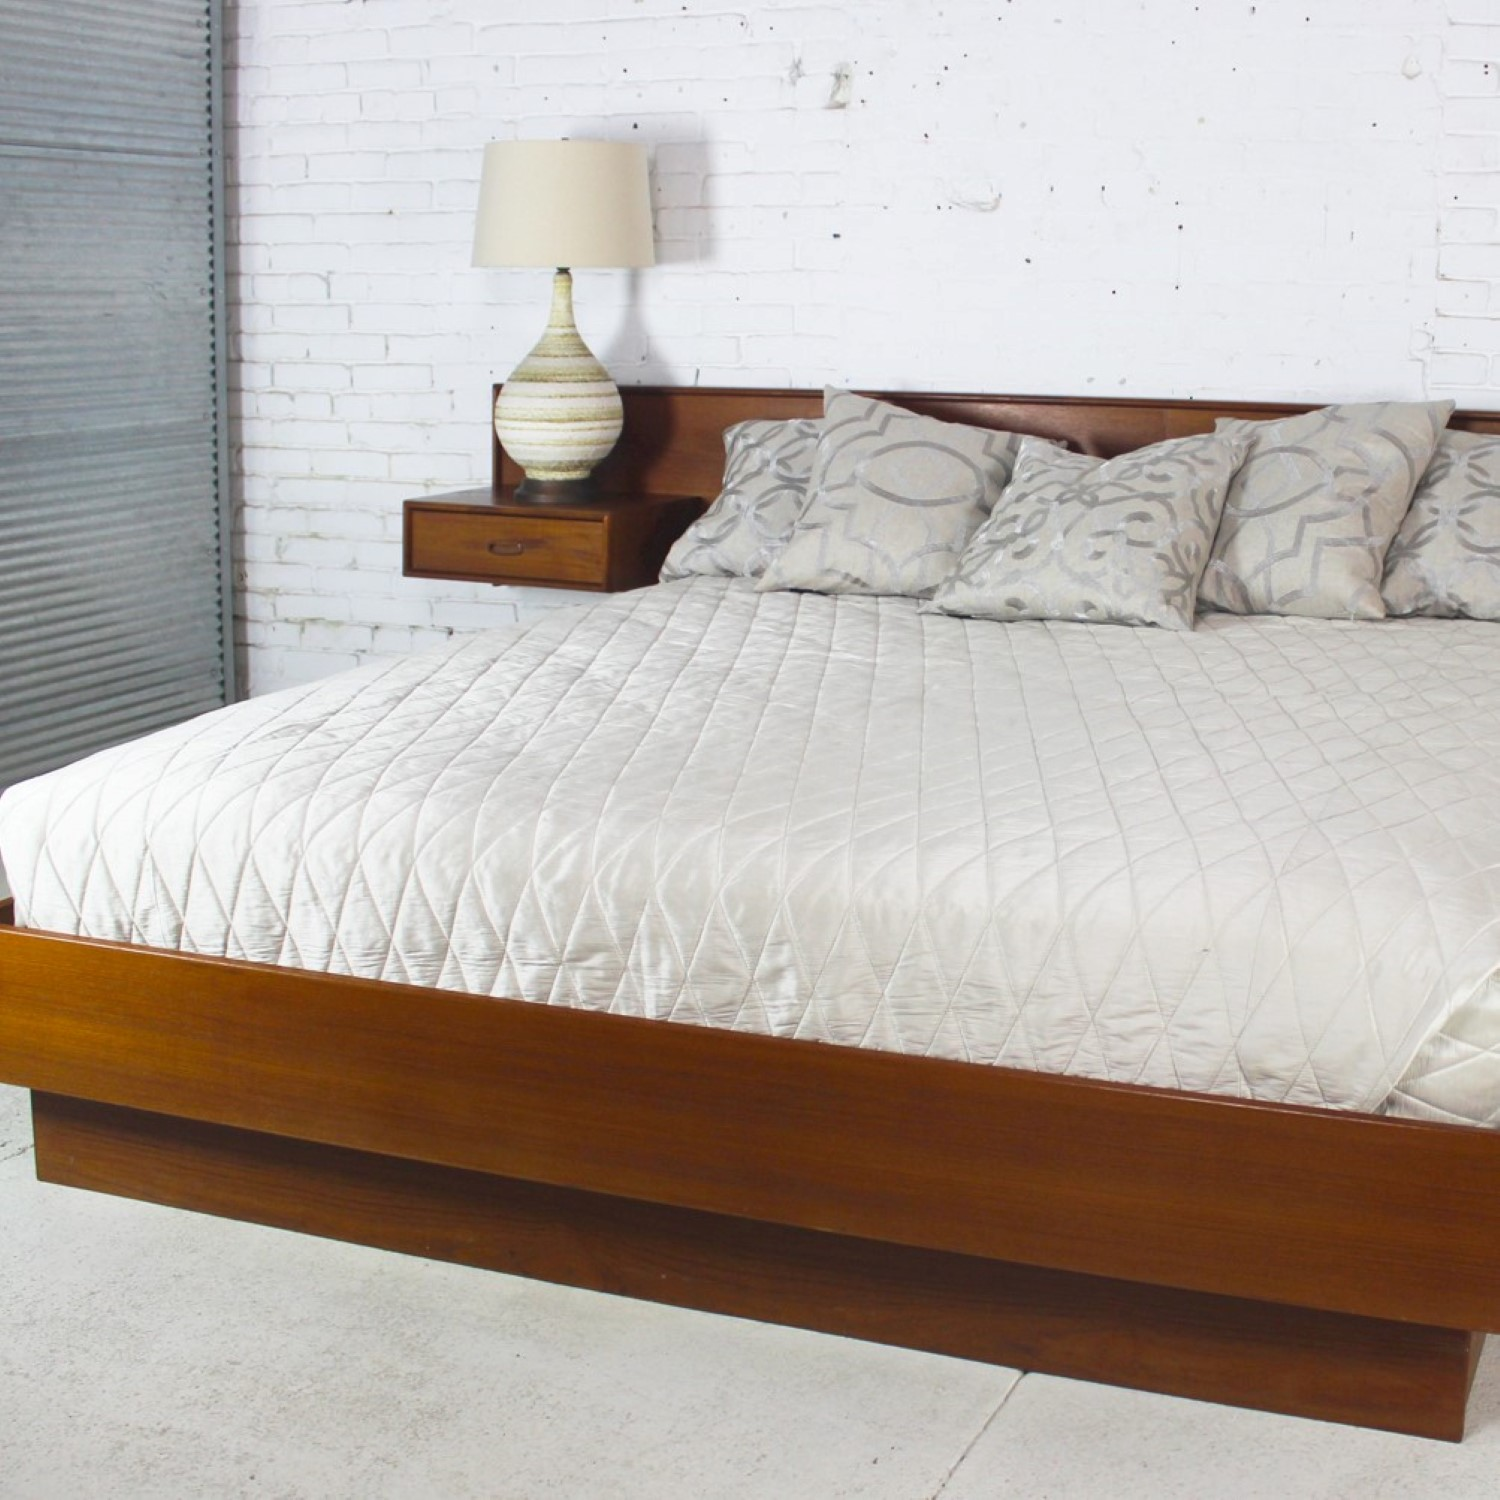 Vintage Scandinavian Modern Teak King Platform Bed With Attached Night Stands Warehouse 414